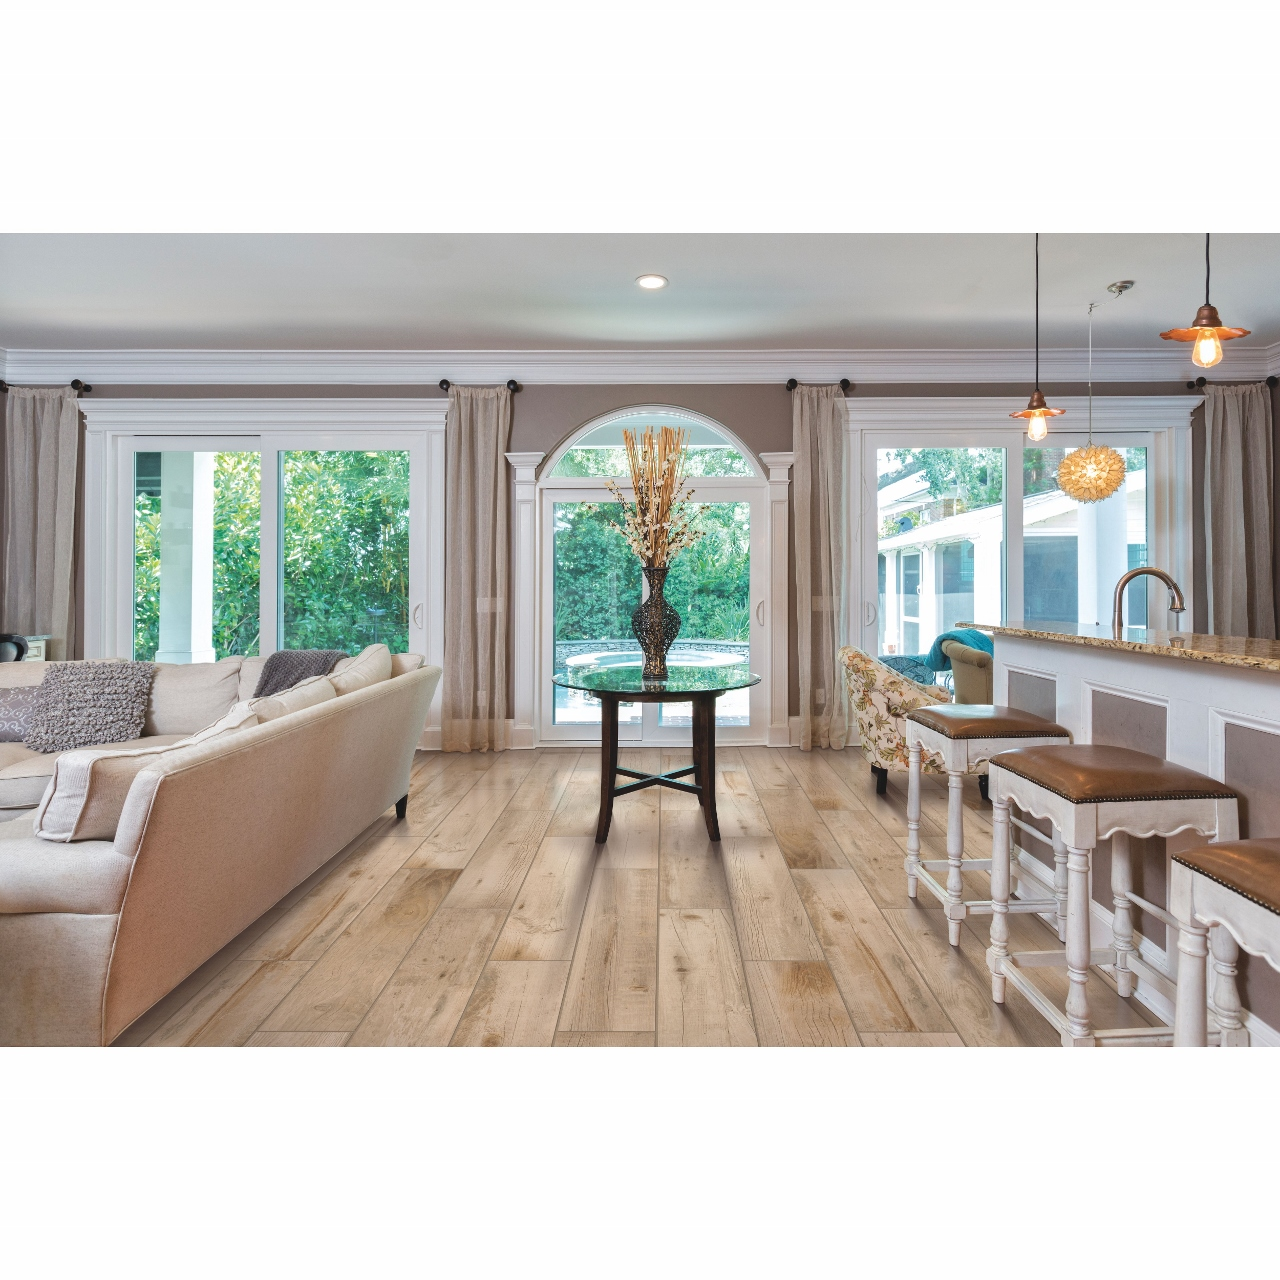 Mohawk Bryson Valley Whiskey Barrel Tile Flooring